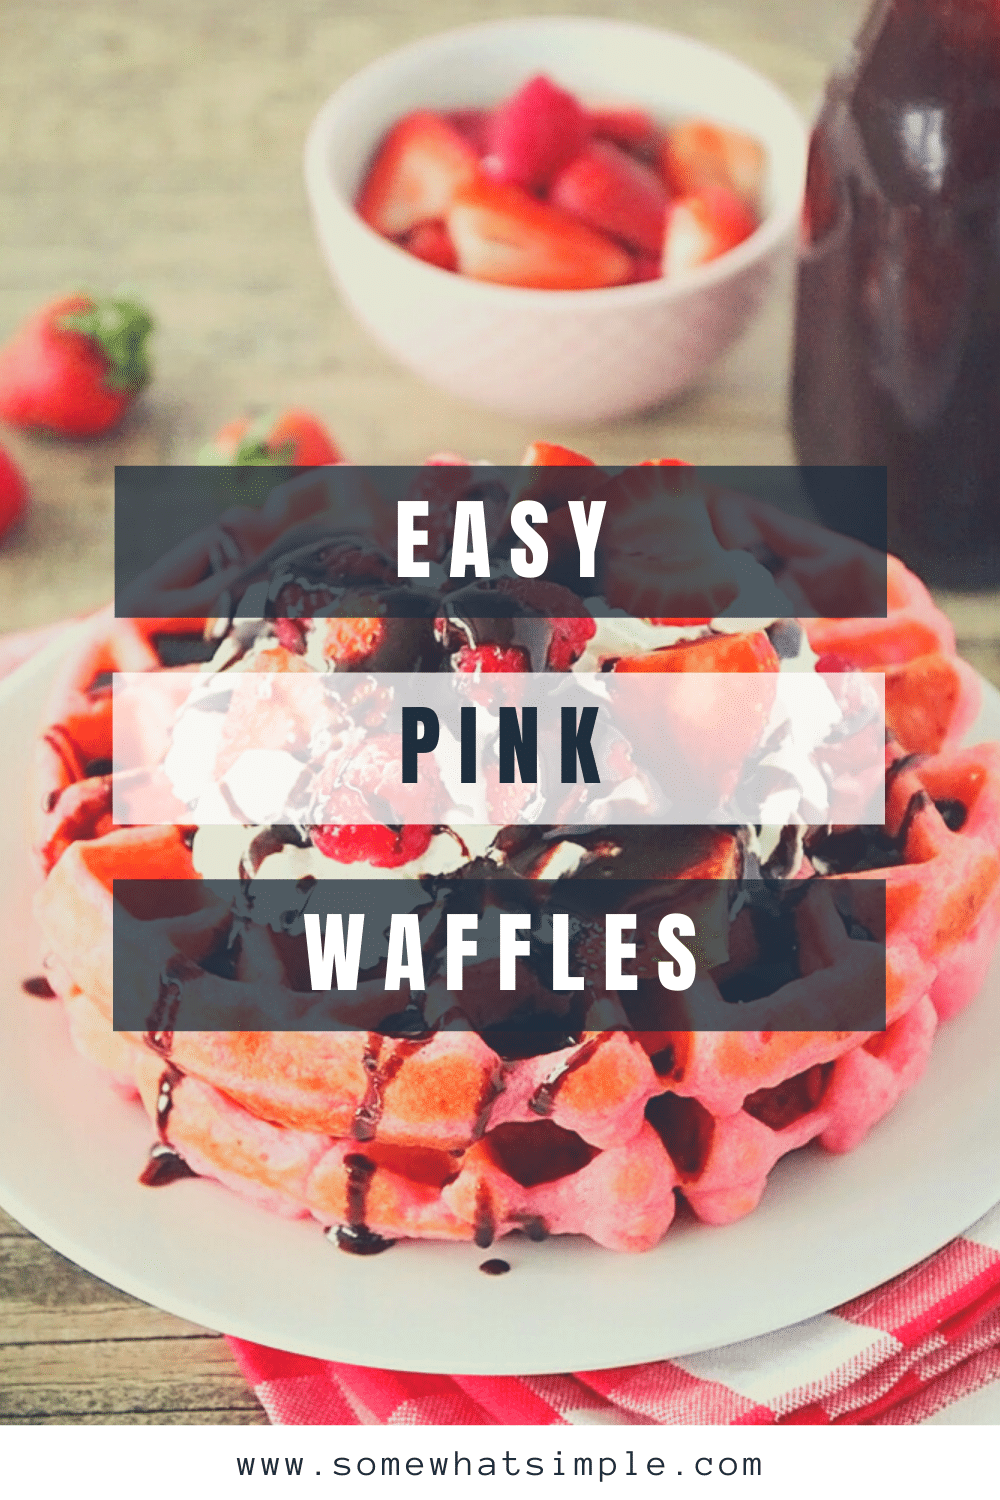 These pink velvet waffles are so fun for Valentine's Day, and so quick and easy to make! Who would love a delicious pink waffle to celebrate any romantic occasion. These waffles turn out soft and fluffy every time! via @somewhatsimple